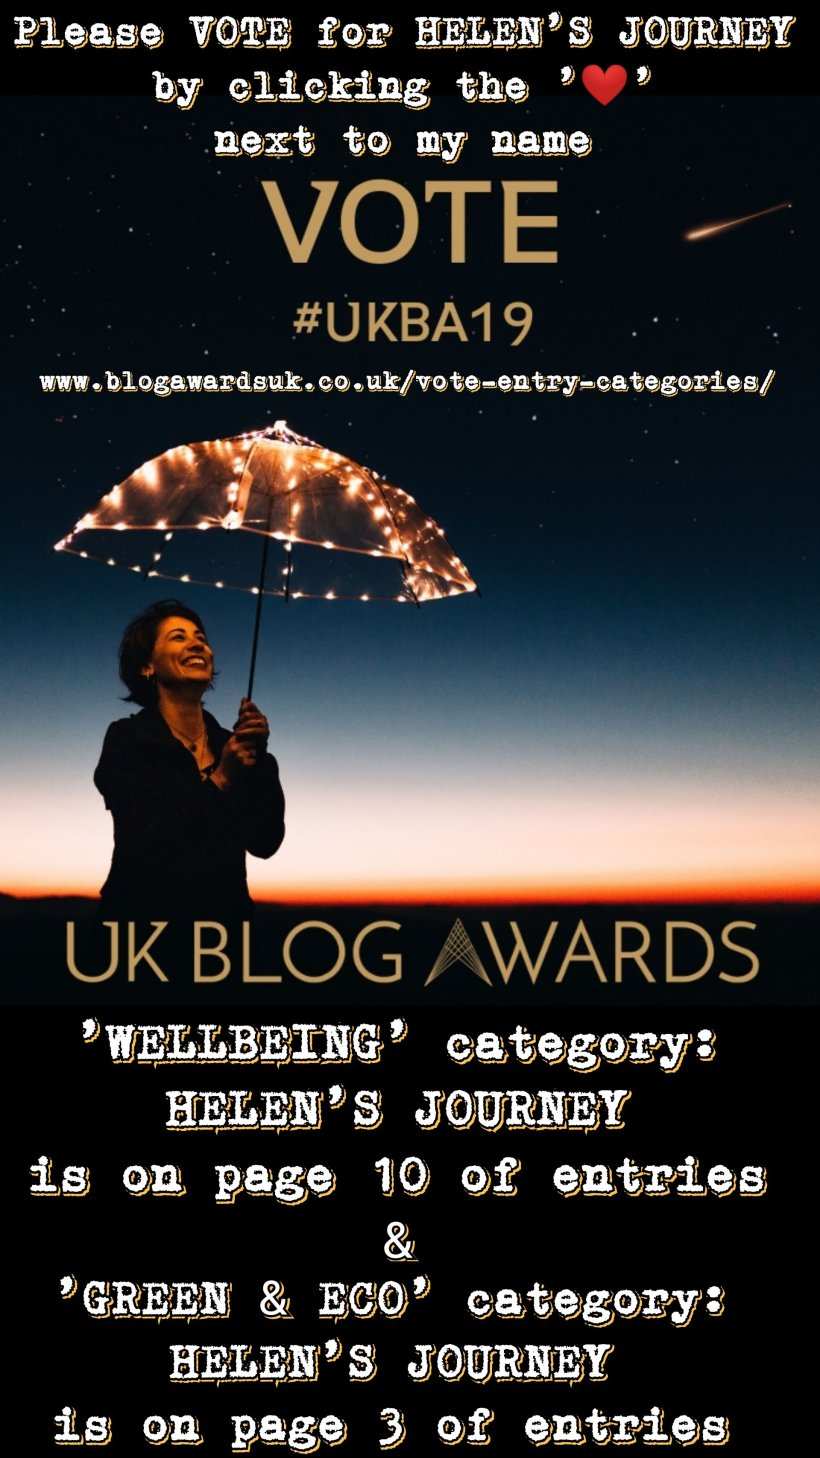 vote for helen's journey blog in the uk blog awards 2019 in category of wellbeing and also in the category of Green and Eco. voting instructions